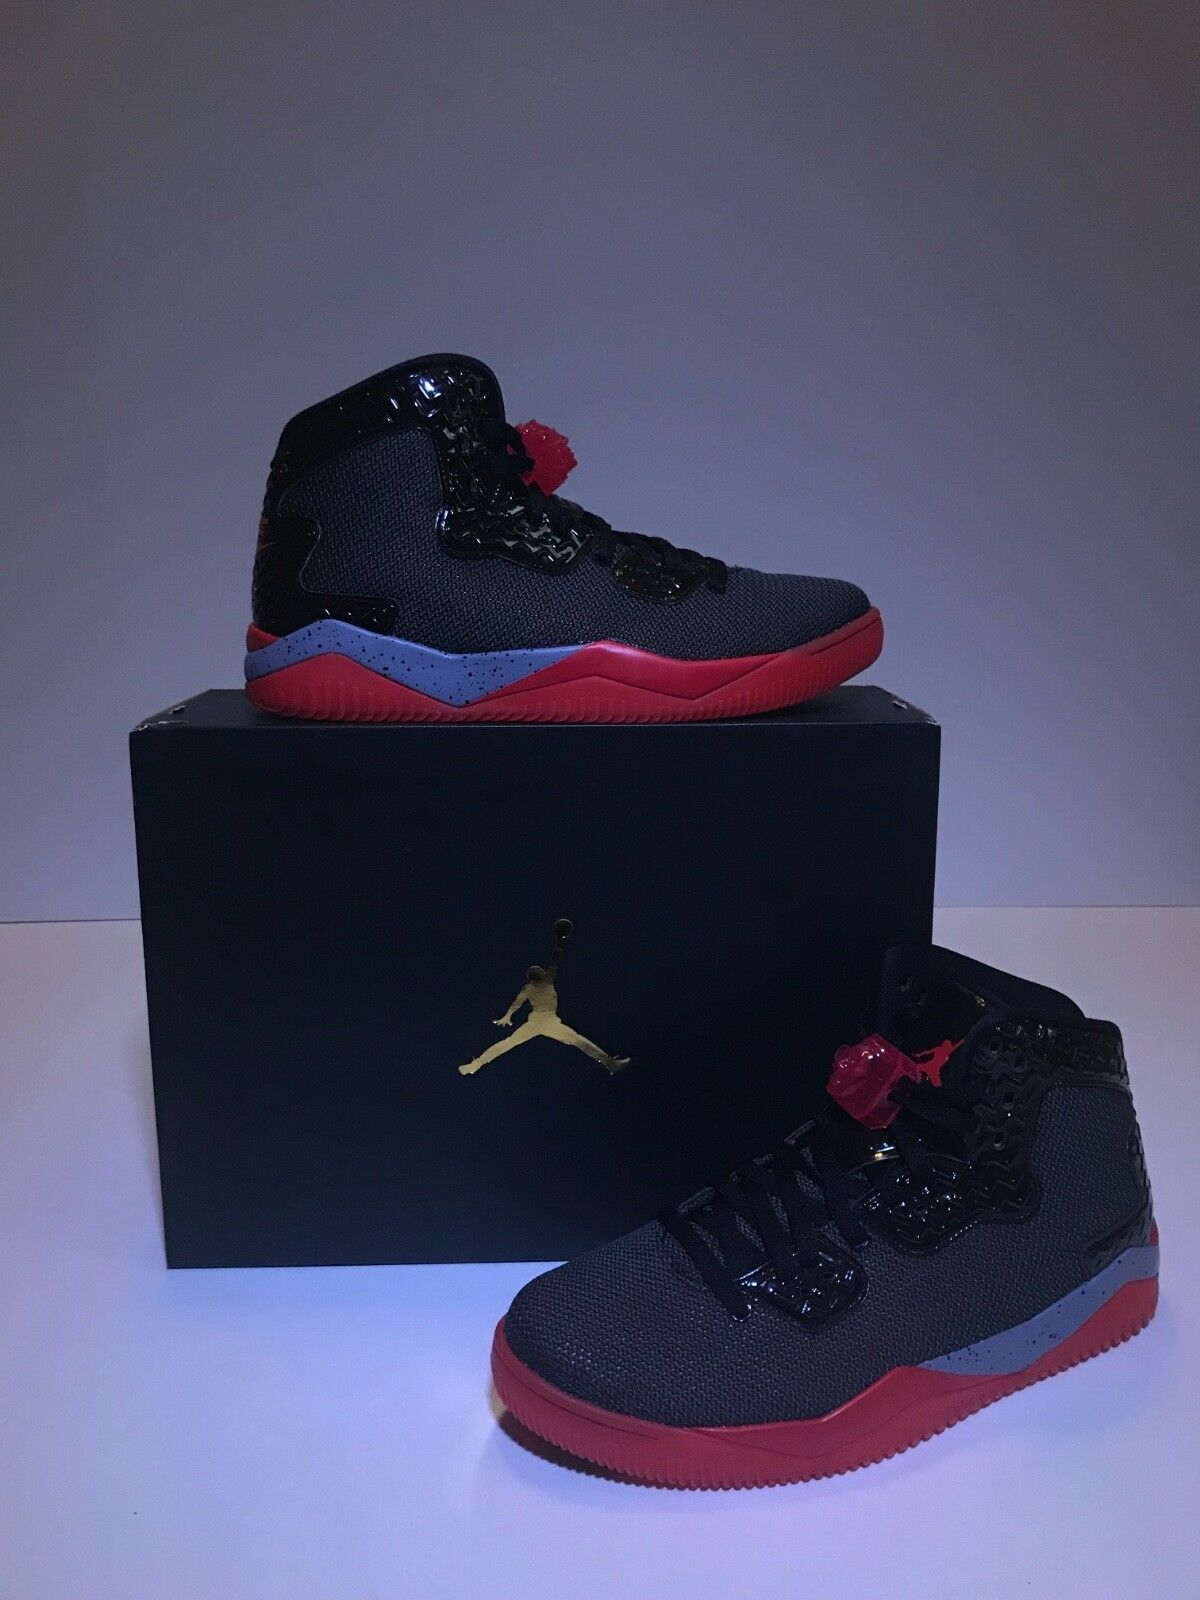 Nike Air Jordan Spike 40 PE Fire Red edition, Size 10.5, brand new, never worn